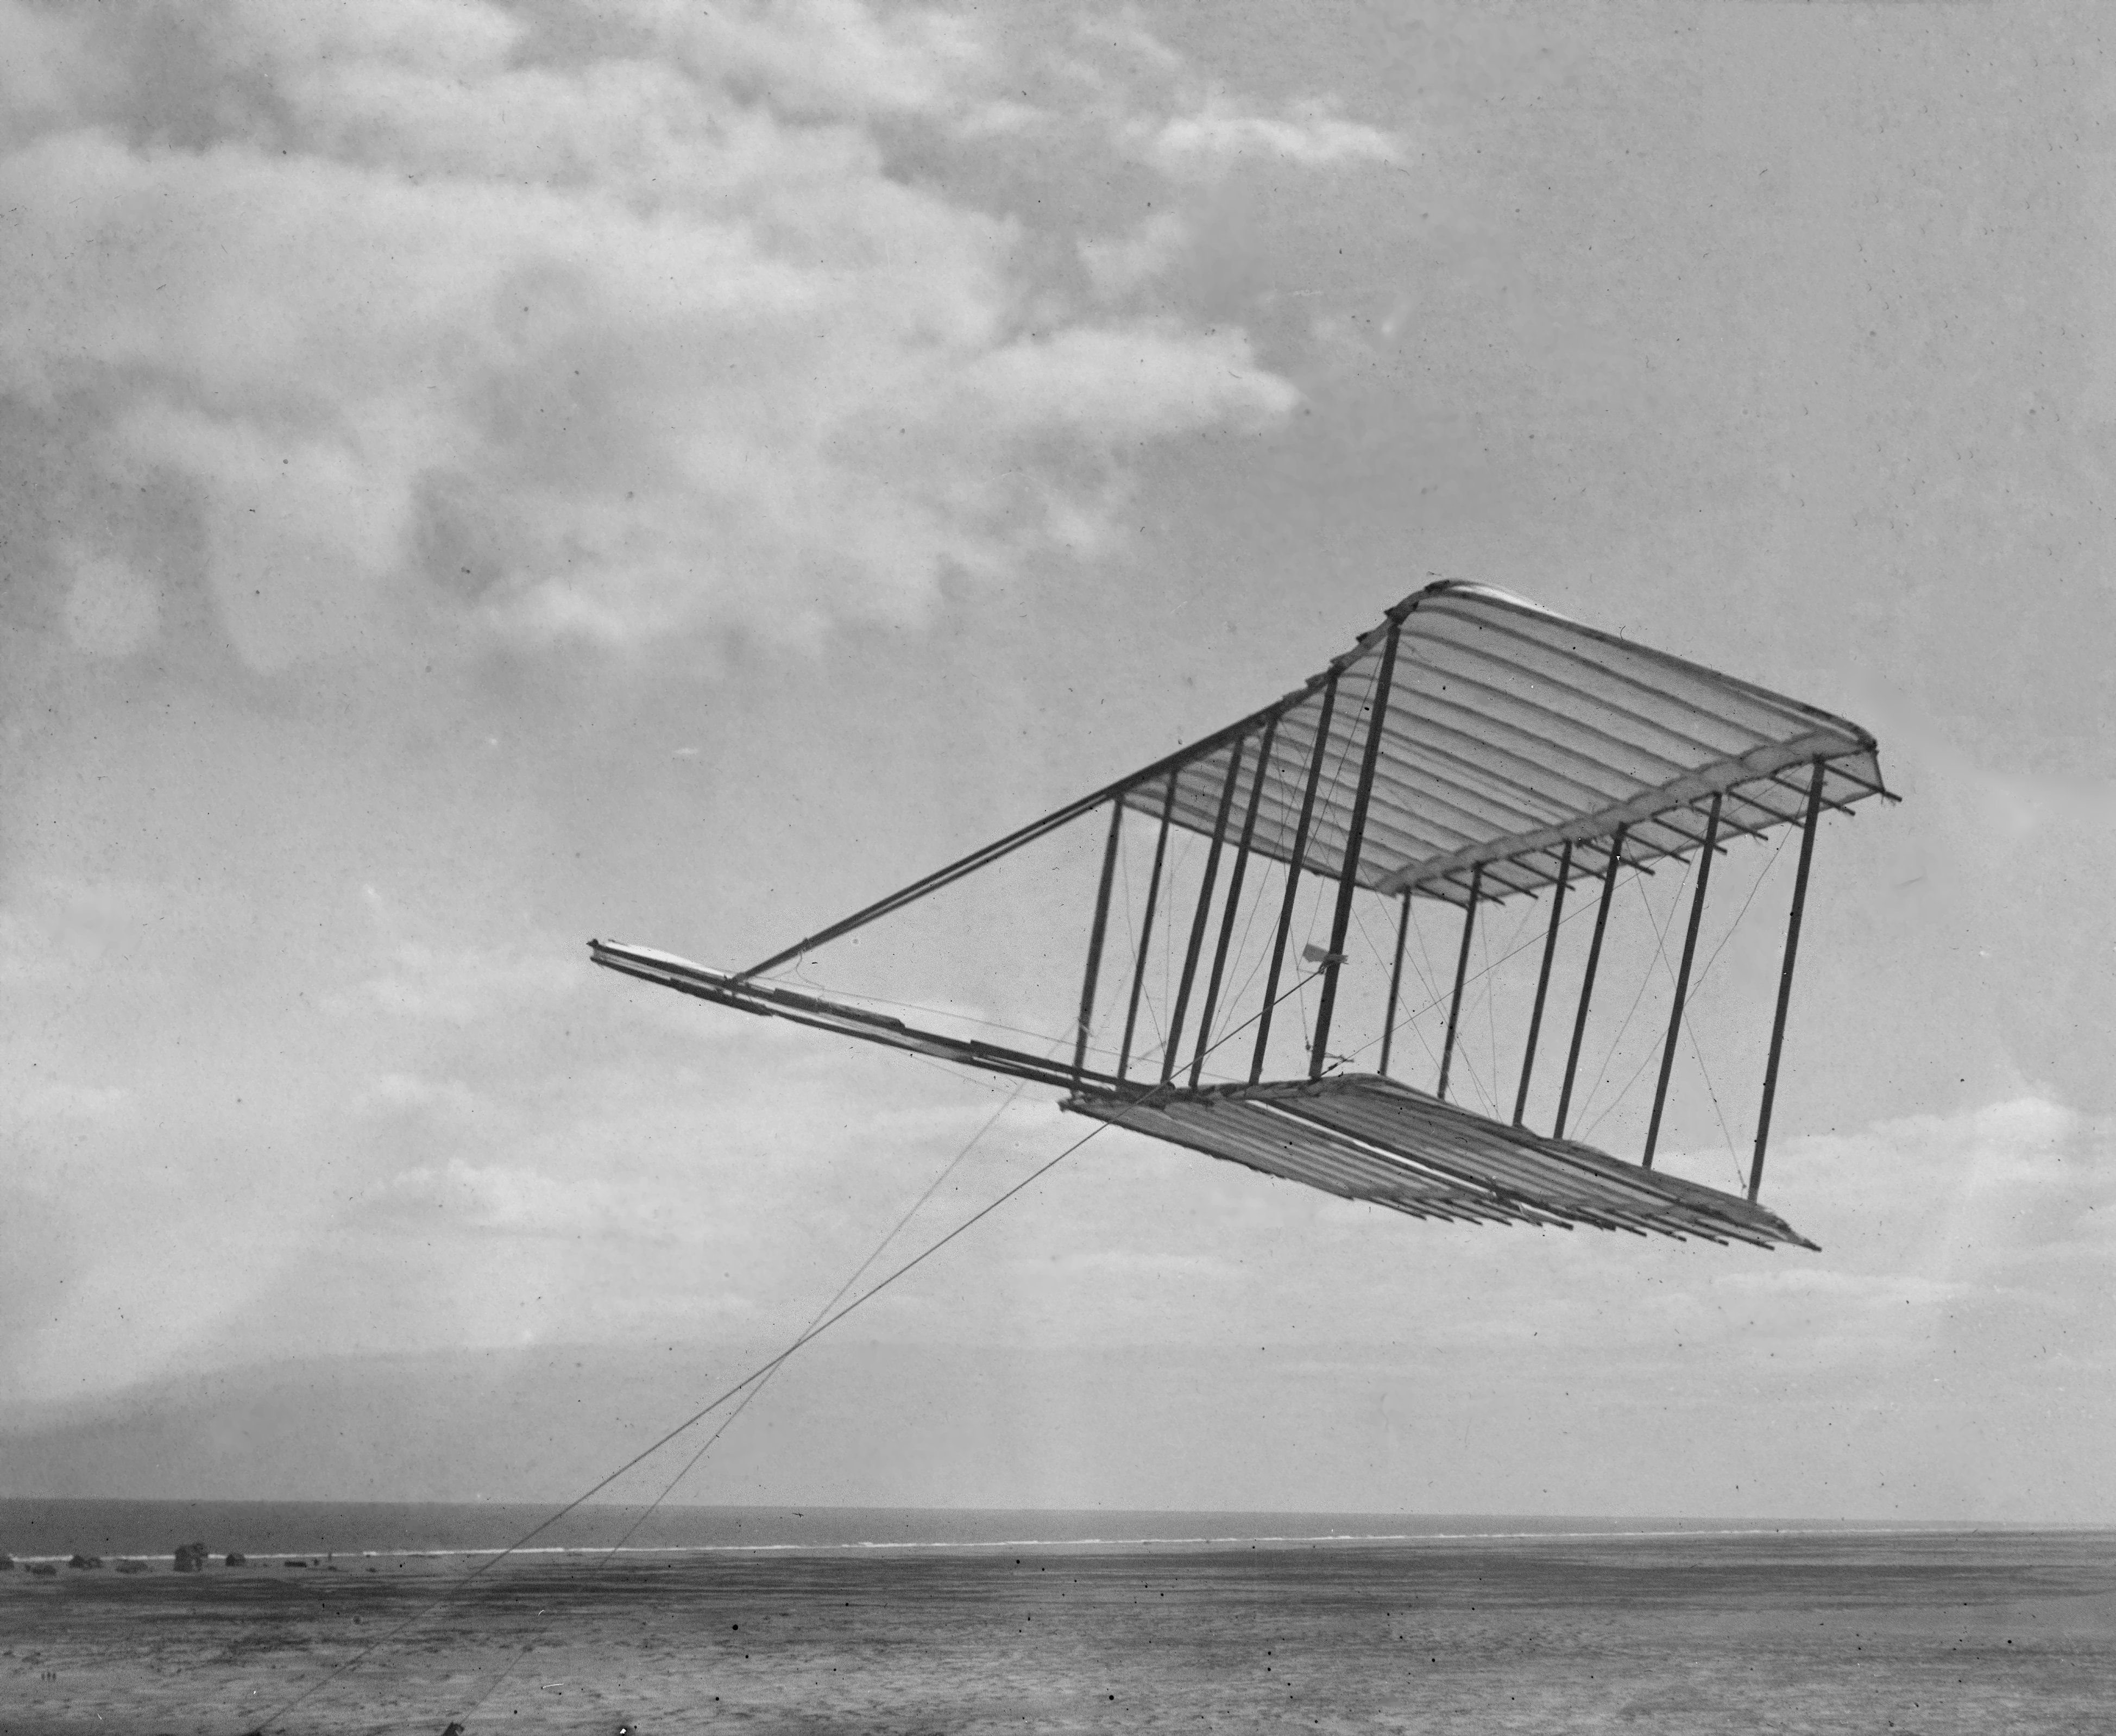 Wright Brothers Flight with regard to wrightbrothers | diafora | pinterest | wright brothers, airplanes